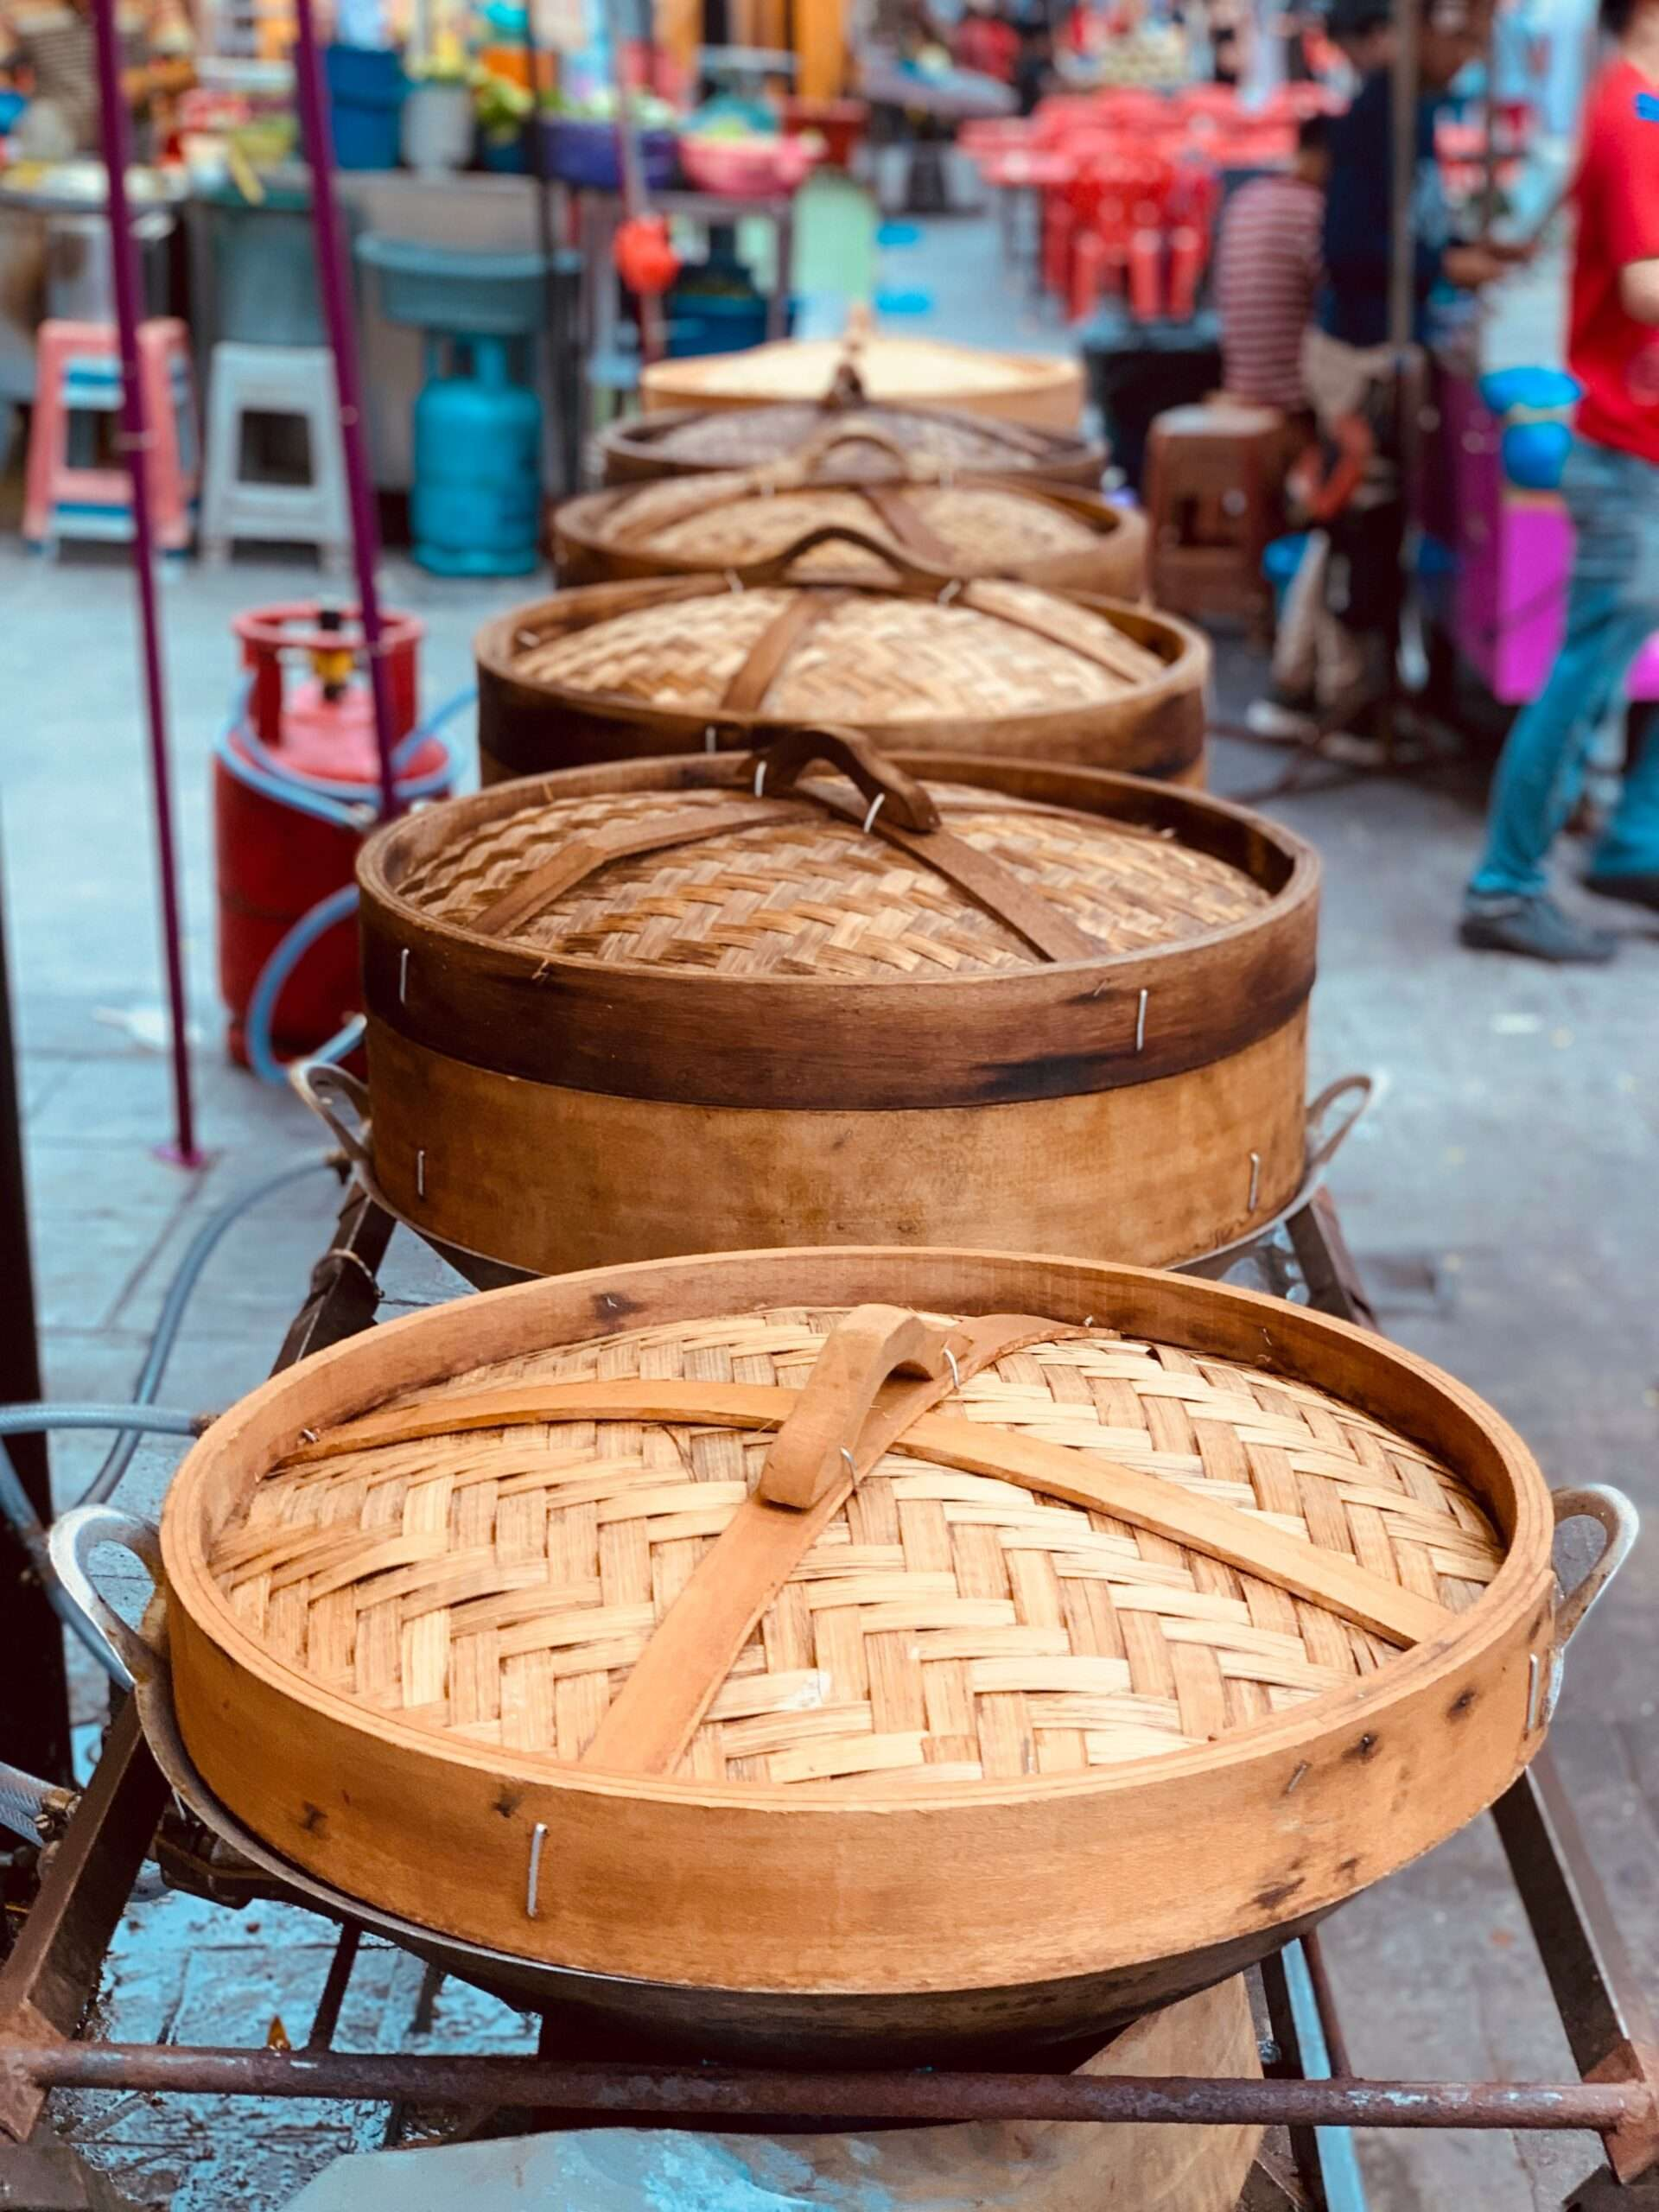 row of woven baskets containing food at a food market in Kuala Lumpur